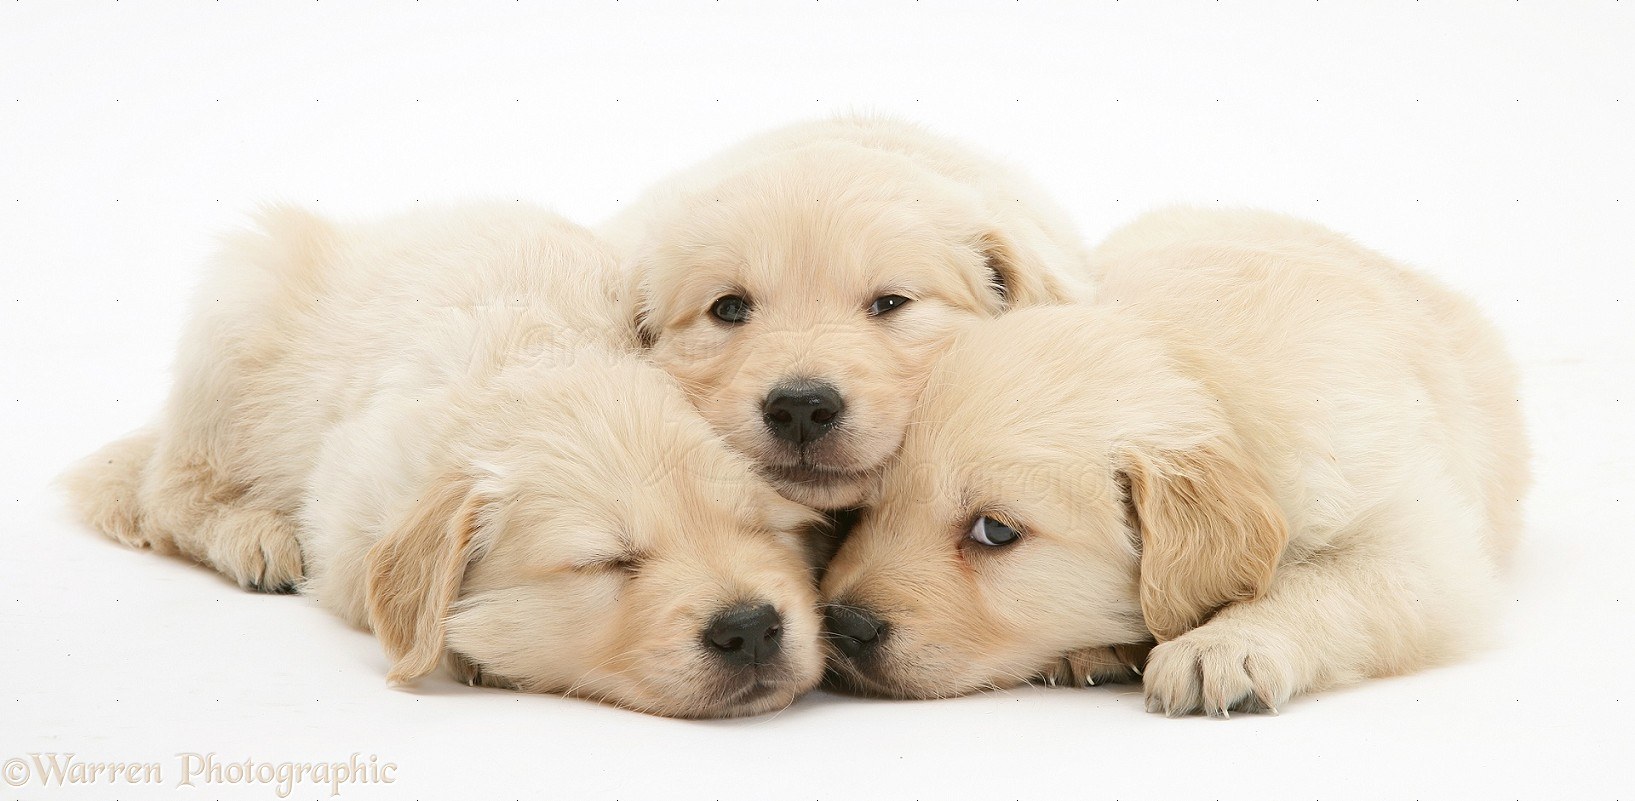 Dogs sleepy golden retriever puppies photo wp17864